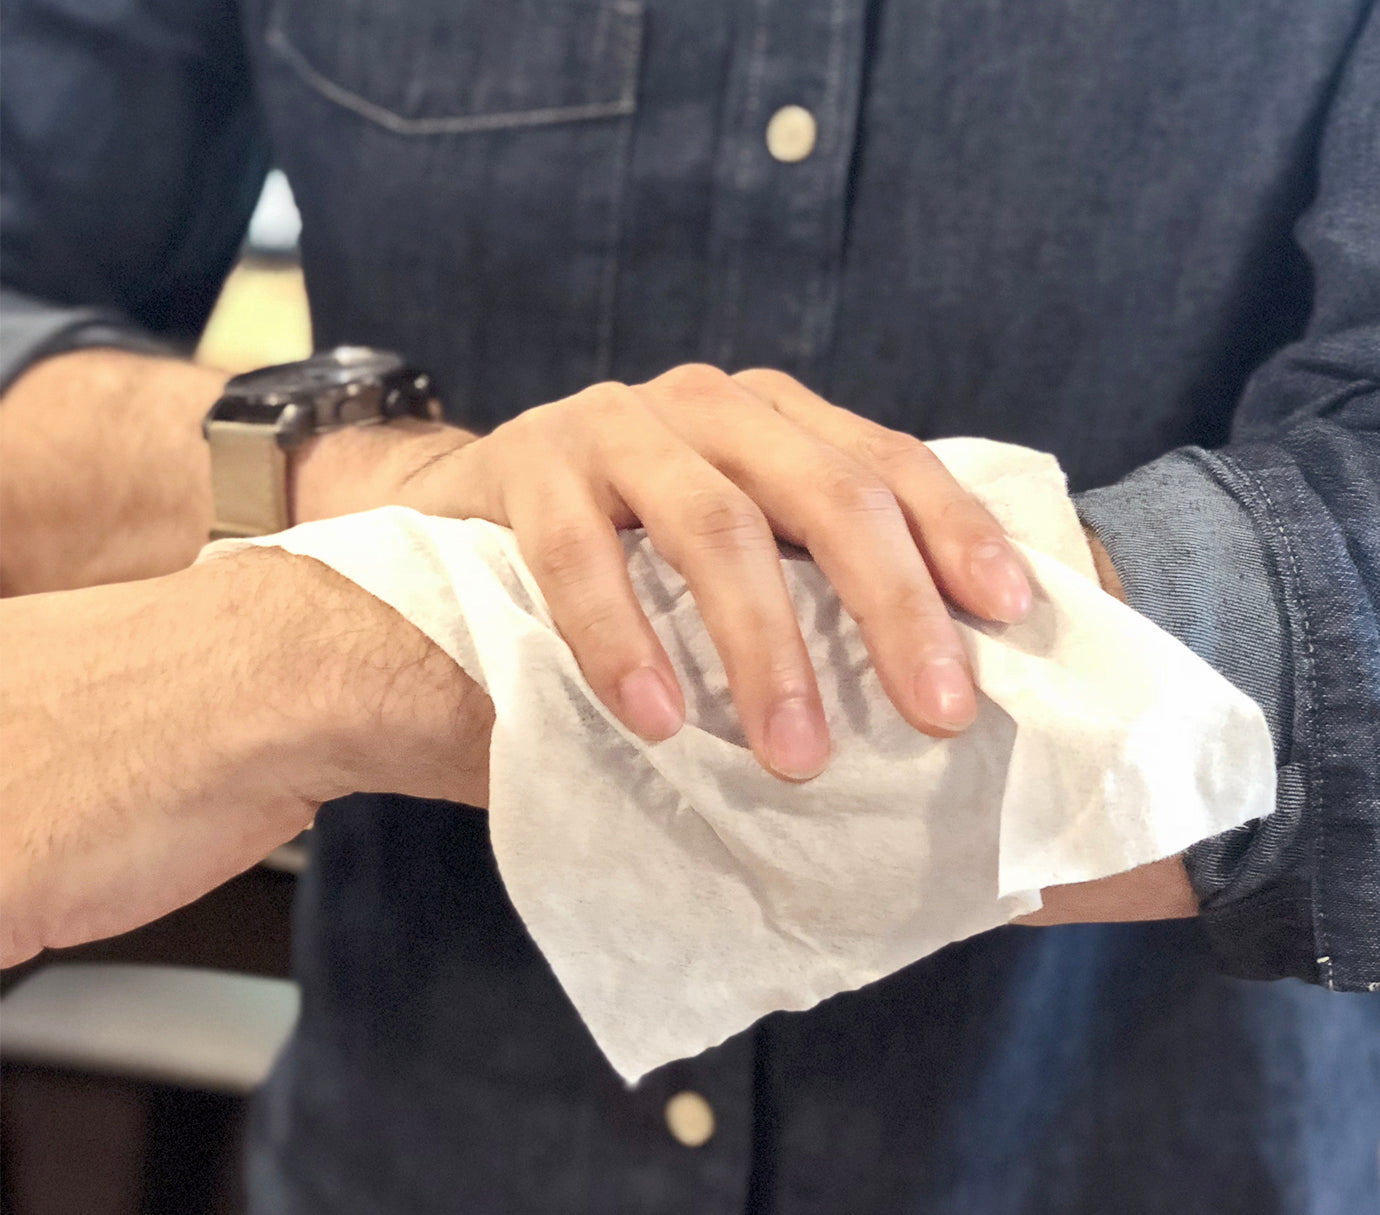 How To Use - Men's Face & Body Wipes